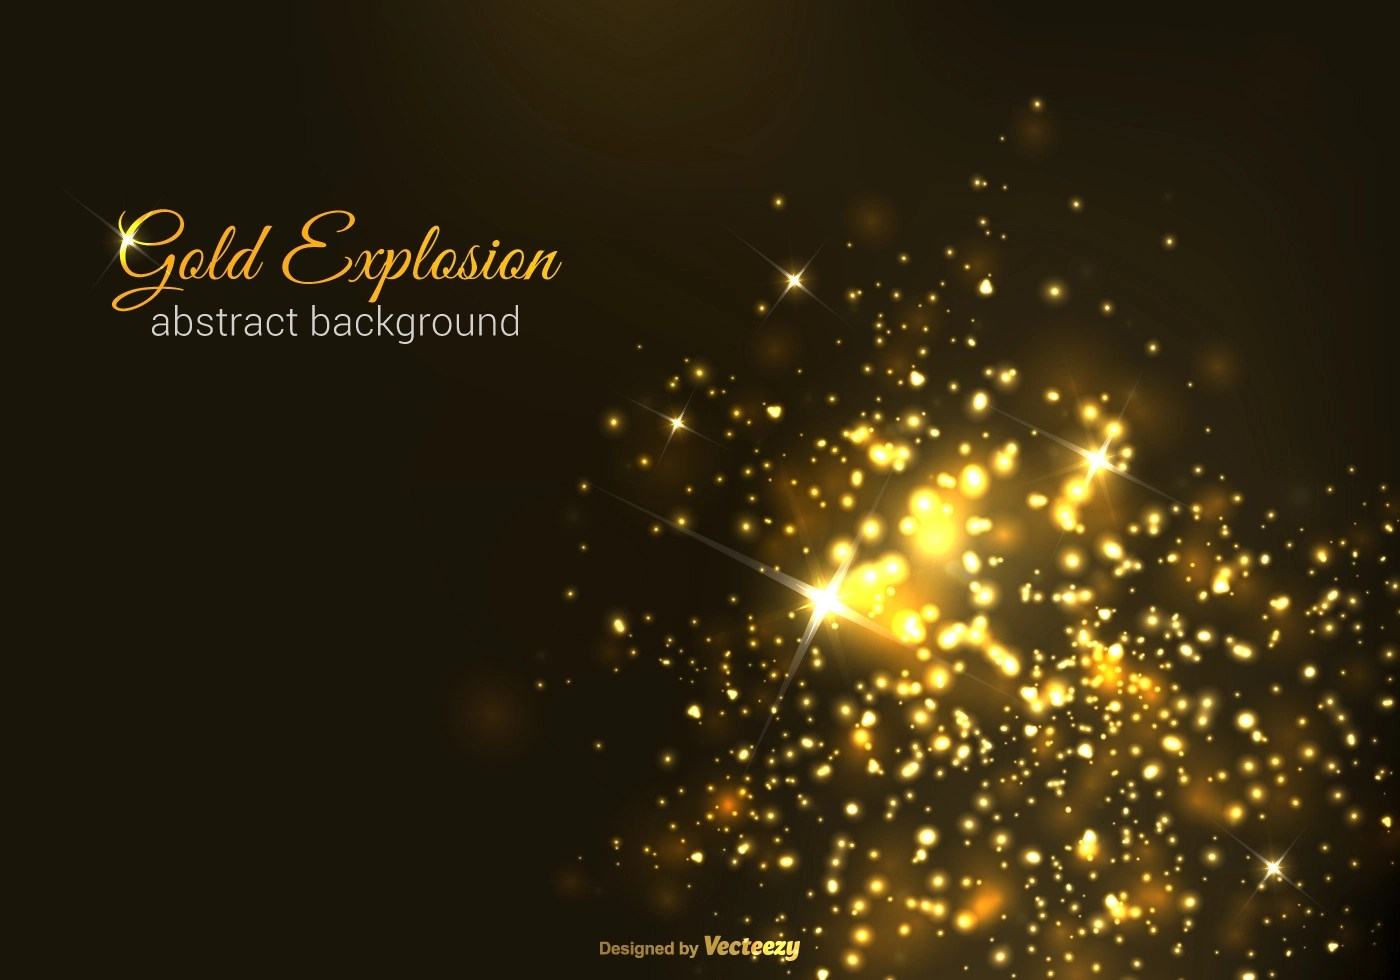 Falling Glitter Wallpaper Gold Explosion Vector Background Download Free Vector